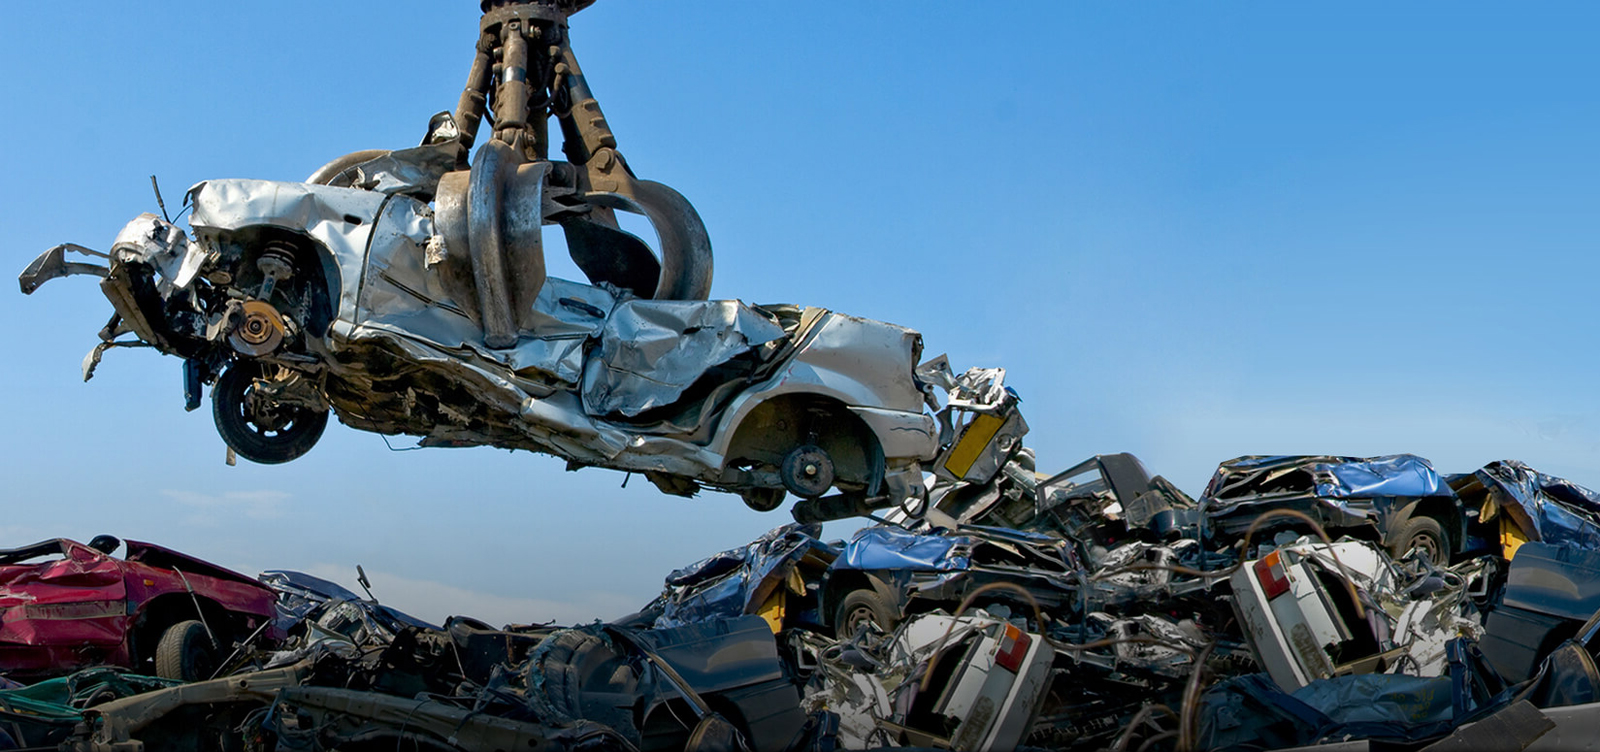 Ct Scrapdid You Know Our Scrap Yard In Clinton Is Less